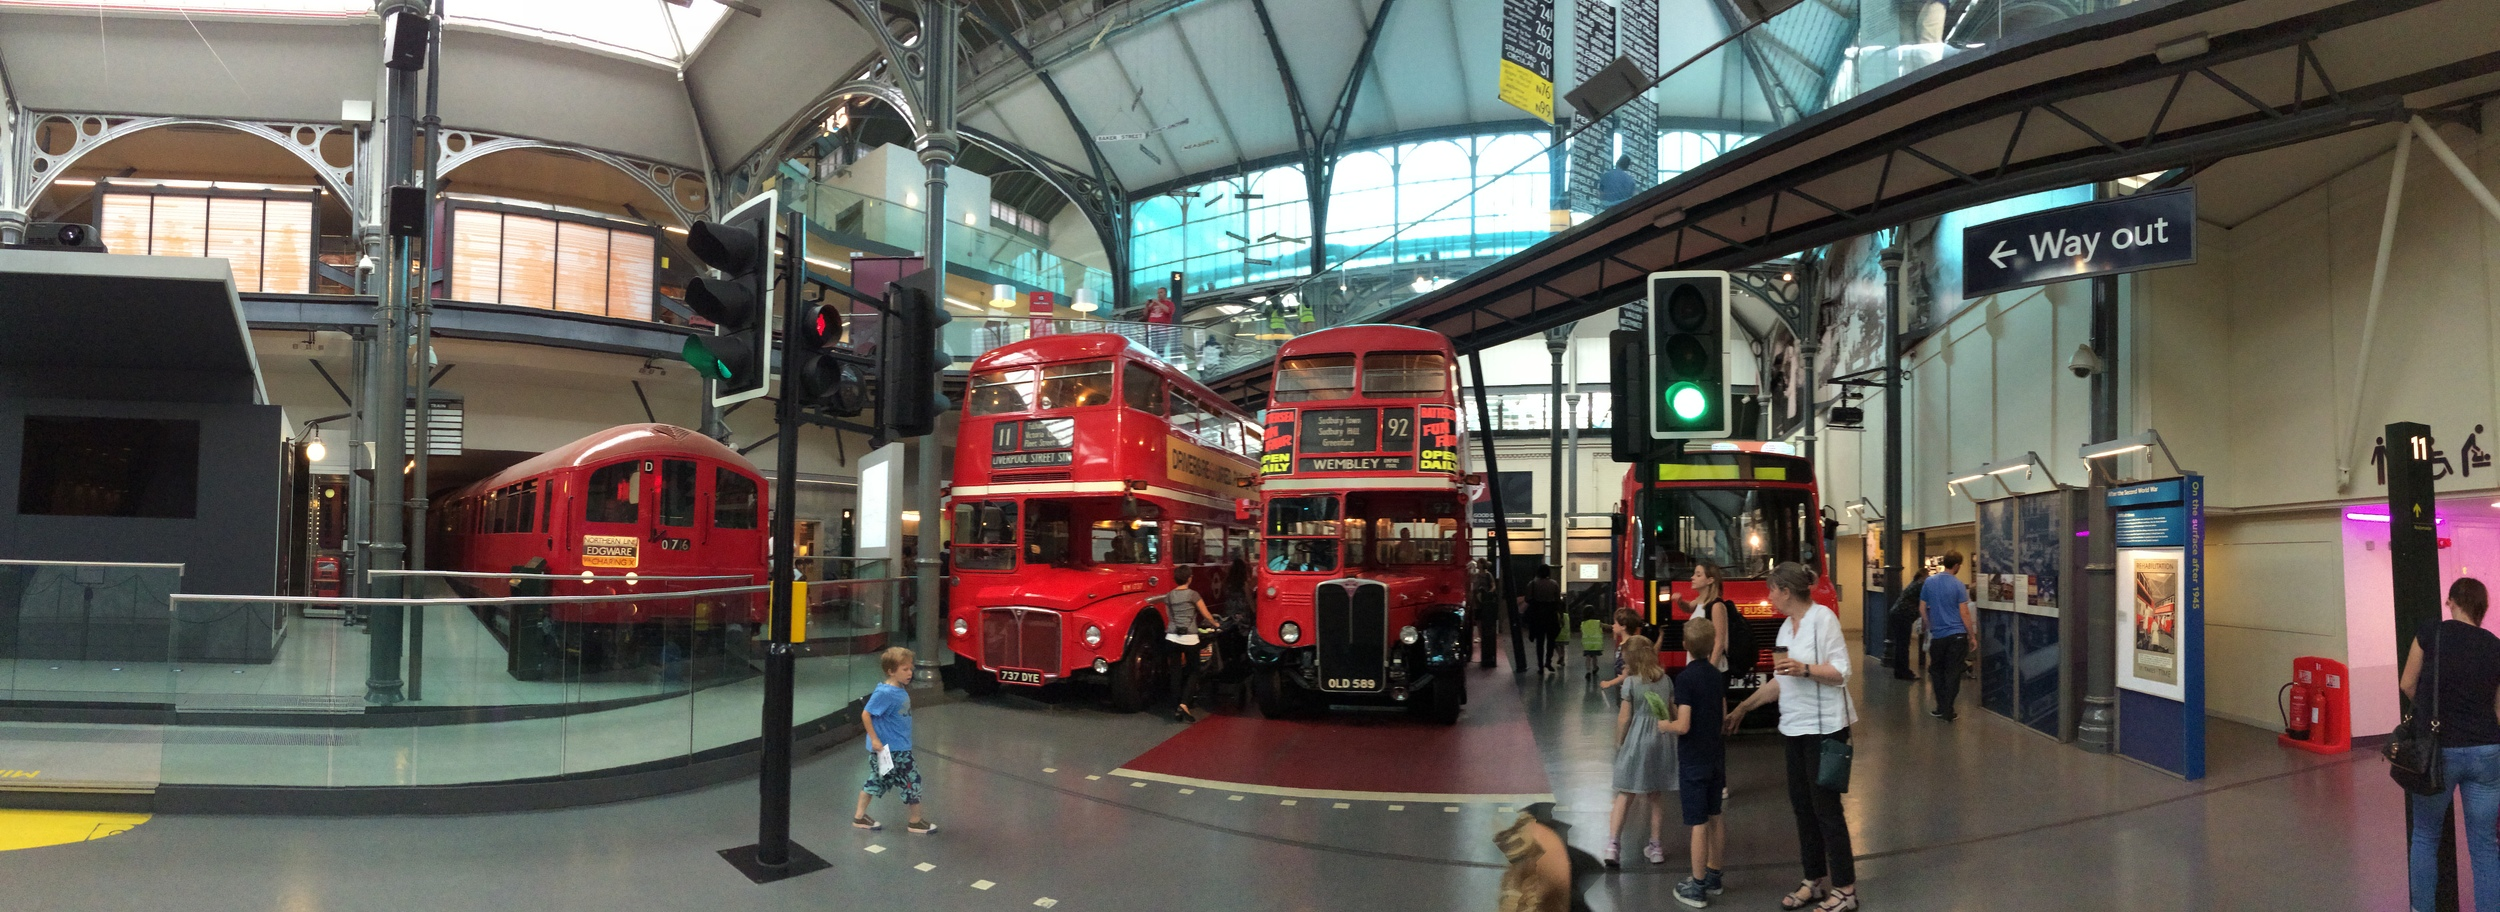 The London Transport Museum - a mecca for transit enthusiasts.